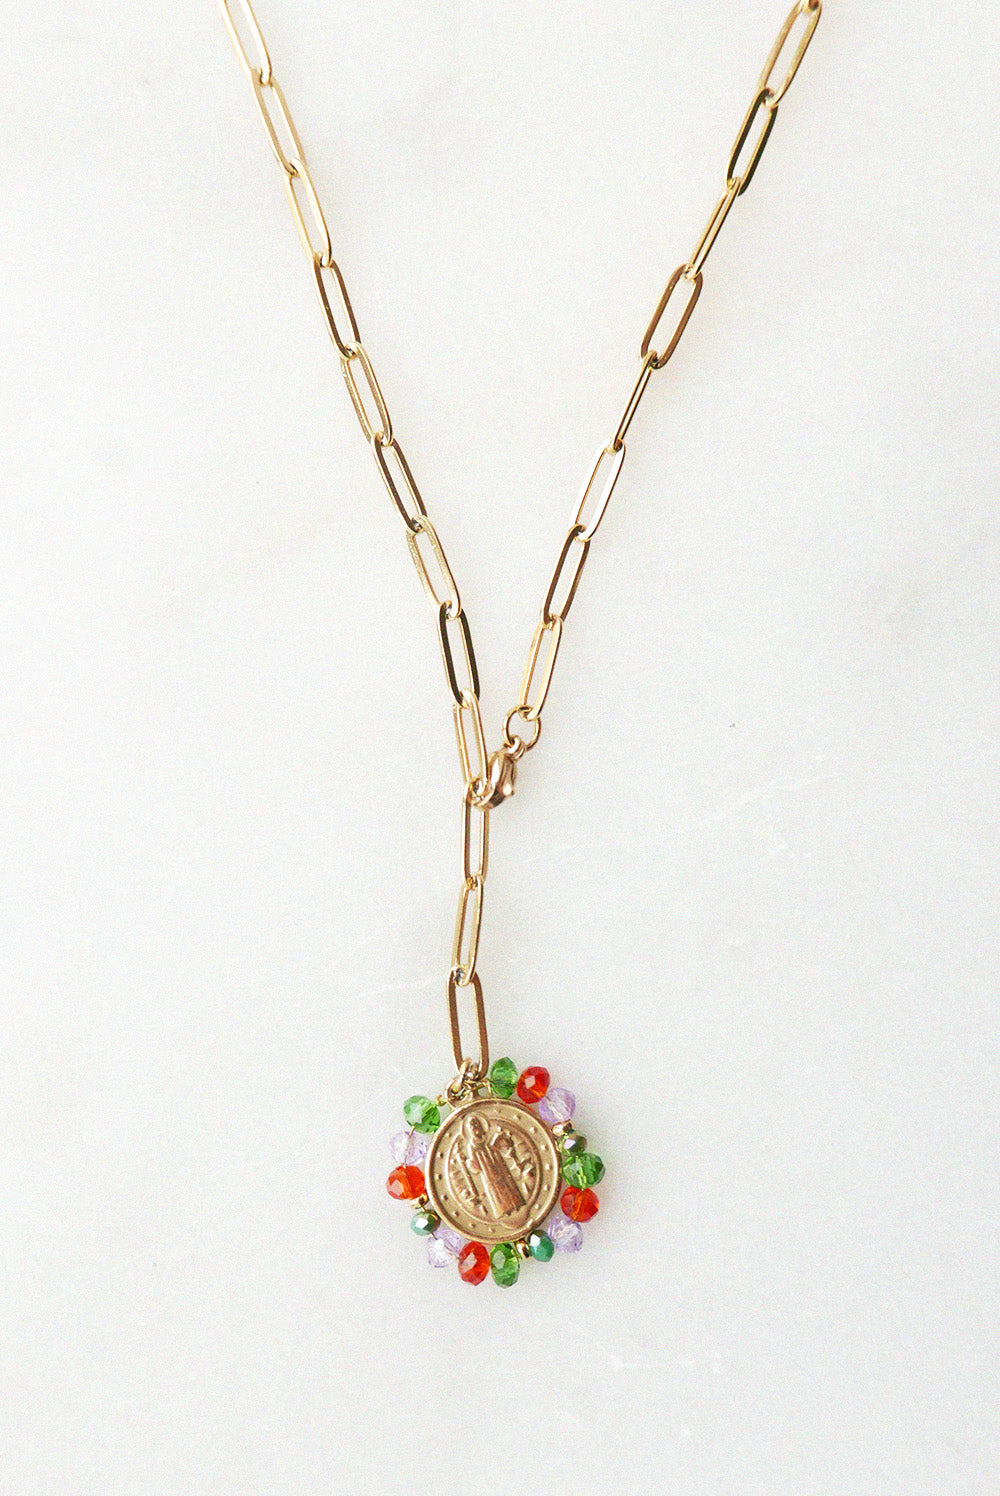 Gloria Medal Necklace - Multi Pop colour